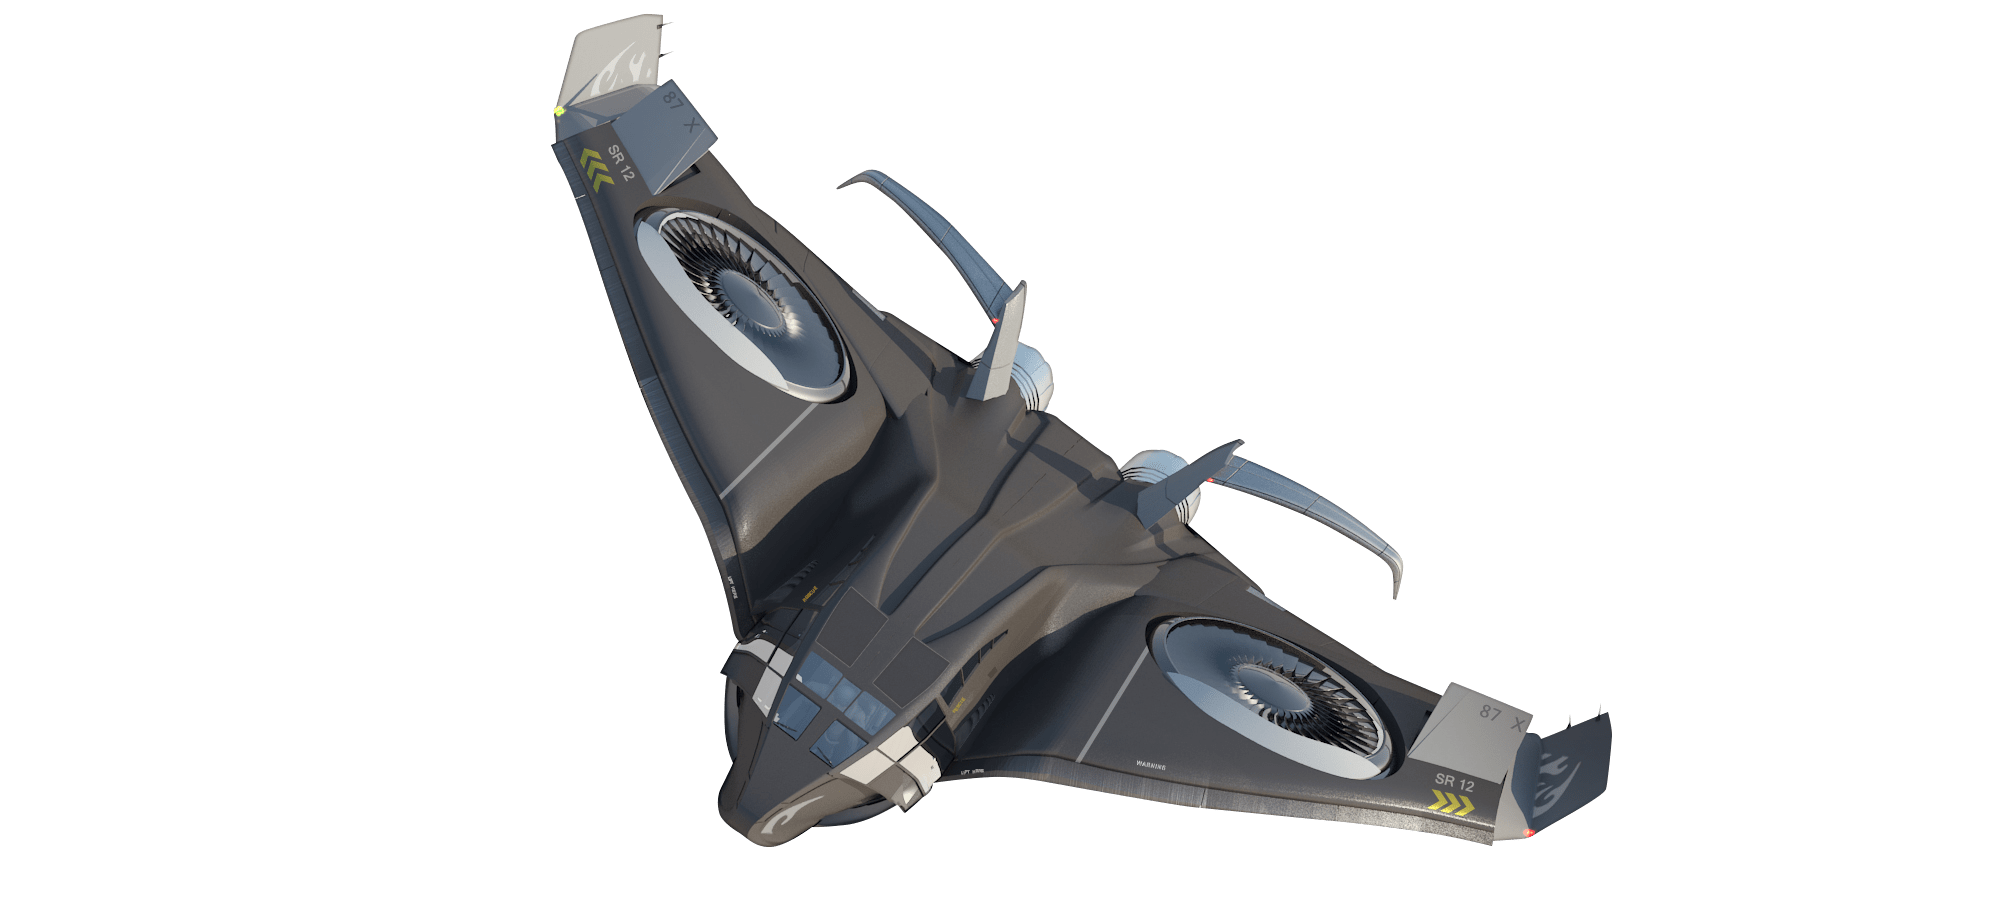 Sting Vtol Evtol Aircraft Overview By Transportup